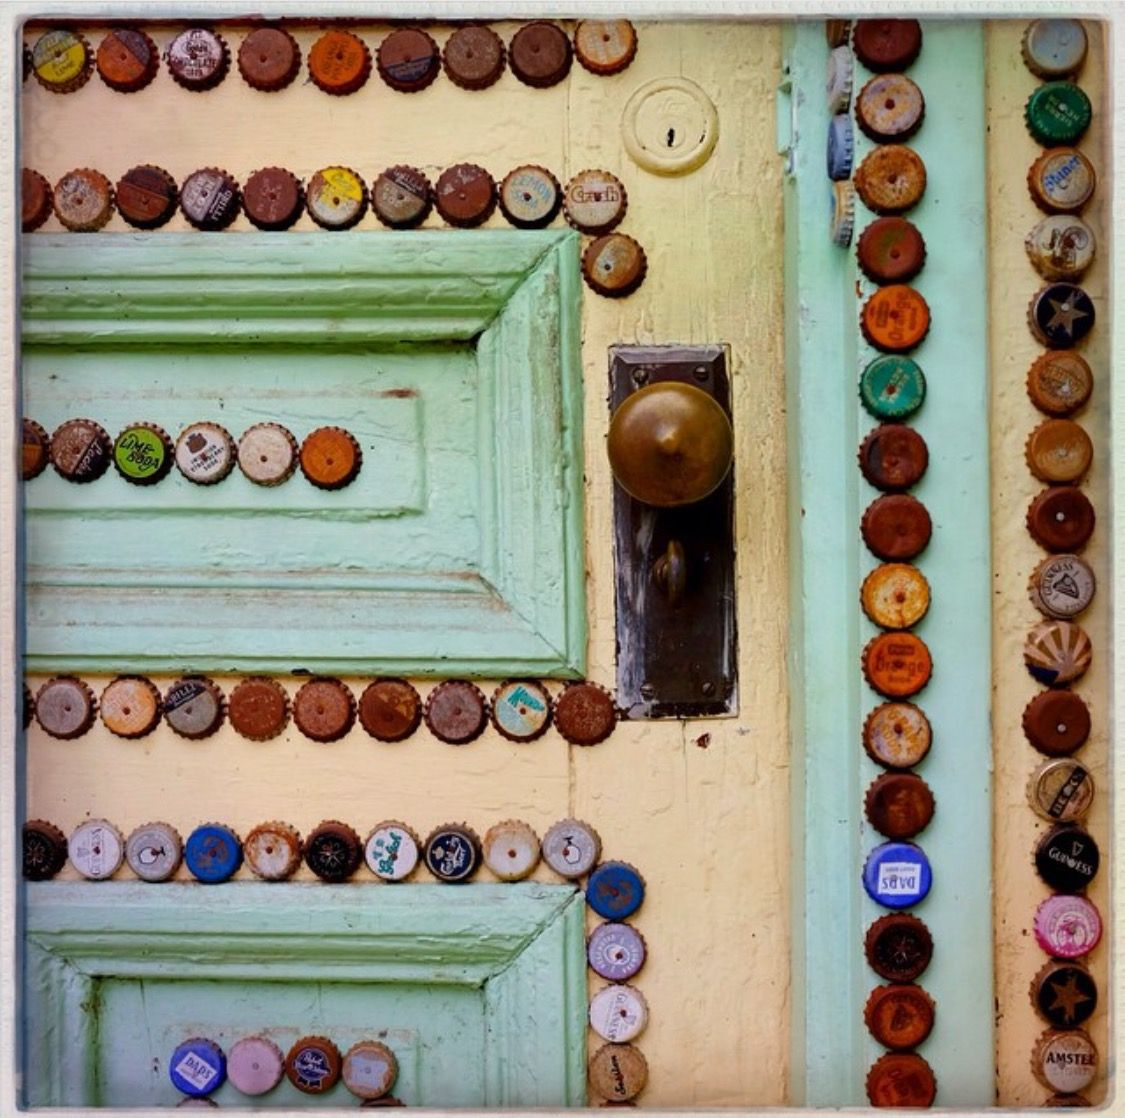 You know the bottle cap collection I have stashed in the Craft Room? This is going to be their new purpose- if I can find a door where they will shine or a dresser drawer. What do you think?